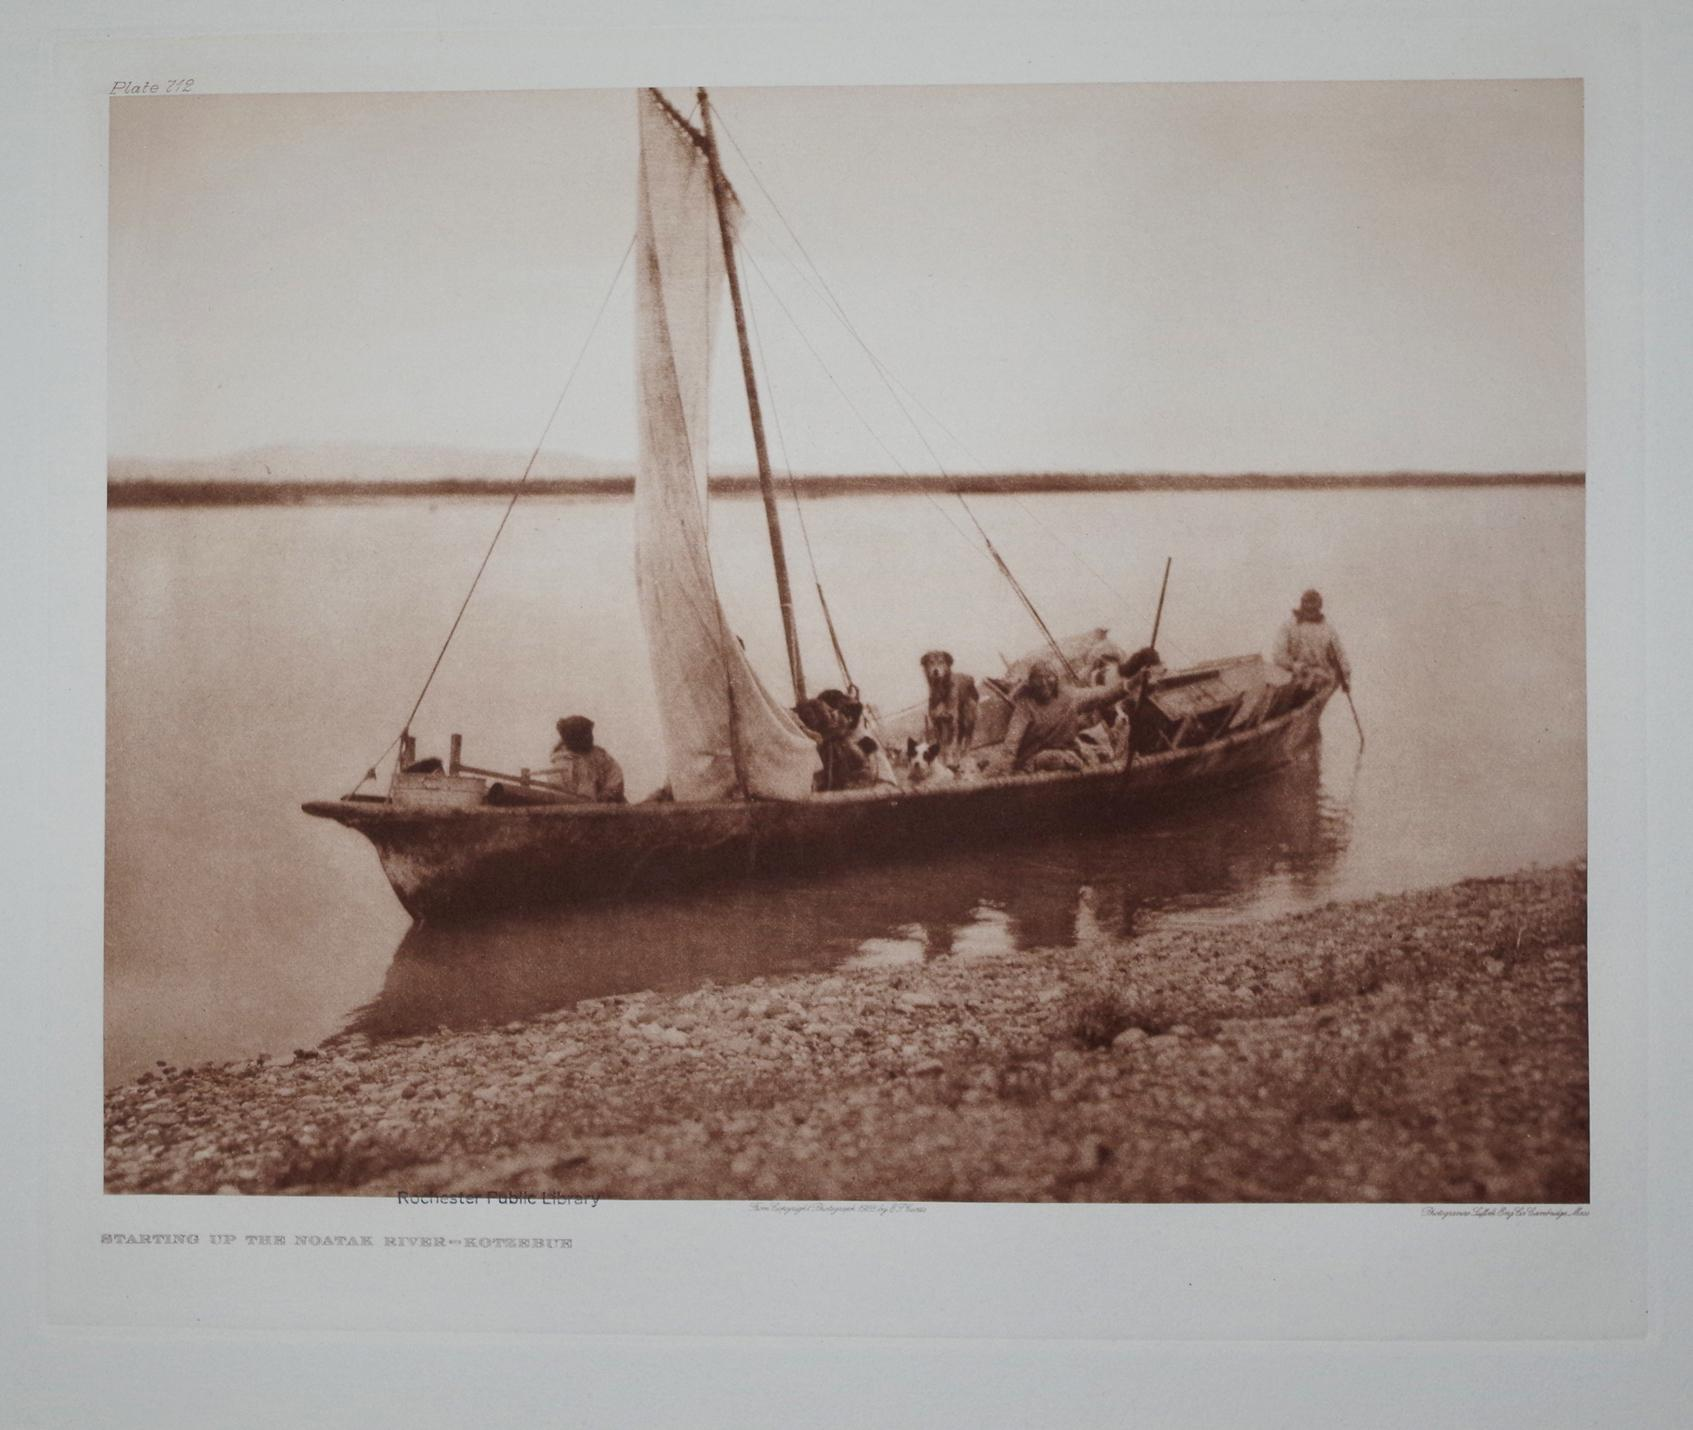 Starting up the Noatak River - Kotzebue, Pl. 712 from The North American Indian. Portfolio XX: ...